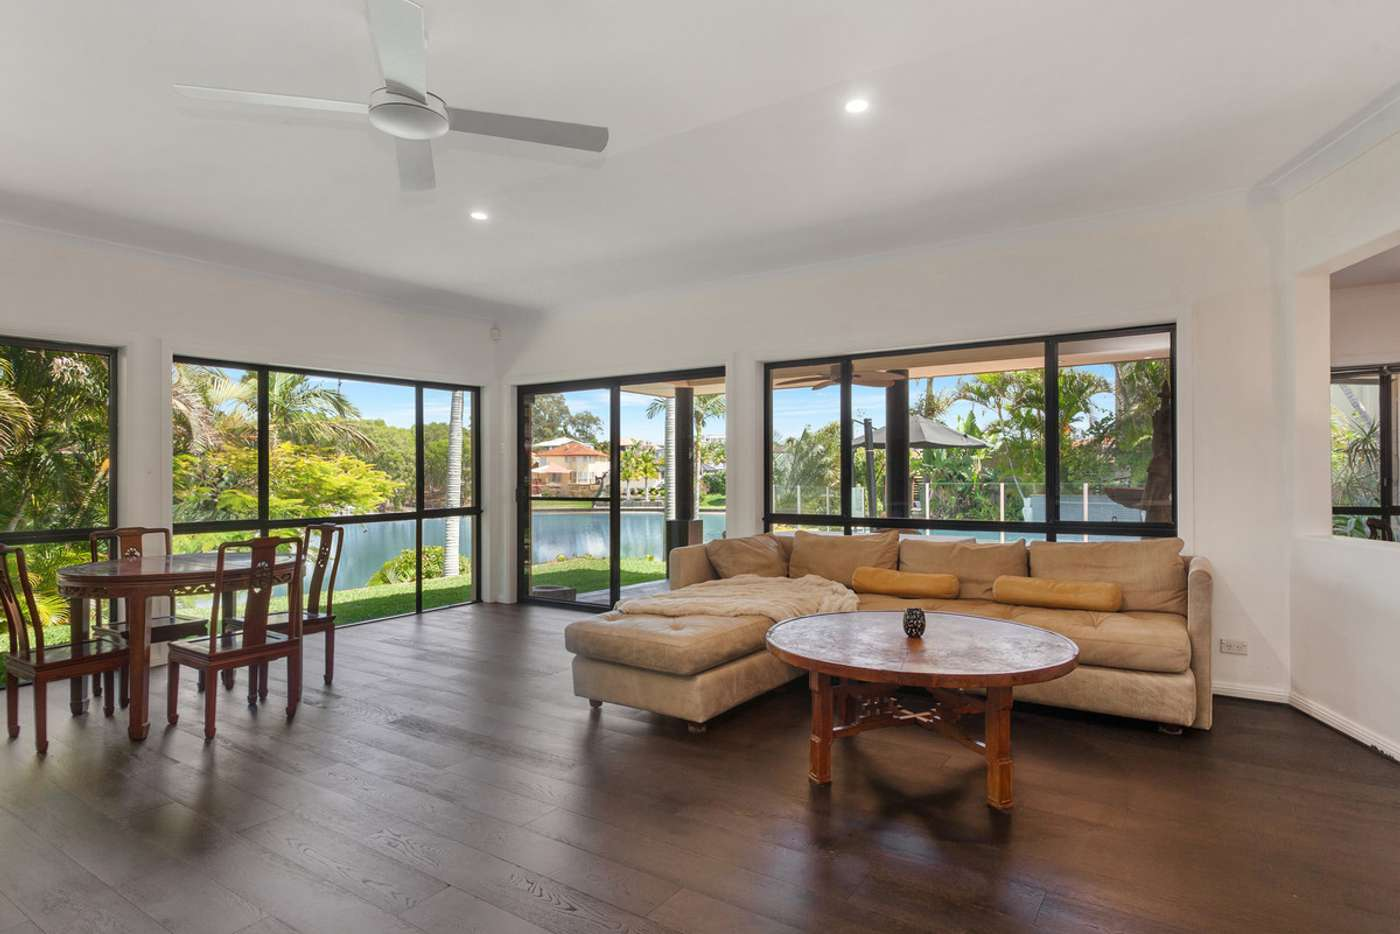 Fifth view of Homely house listing, 6 Crozet Crt, Burleigh Waters QLD 4220